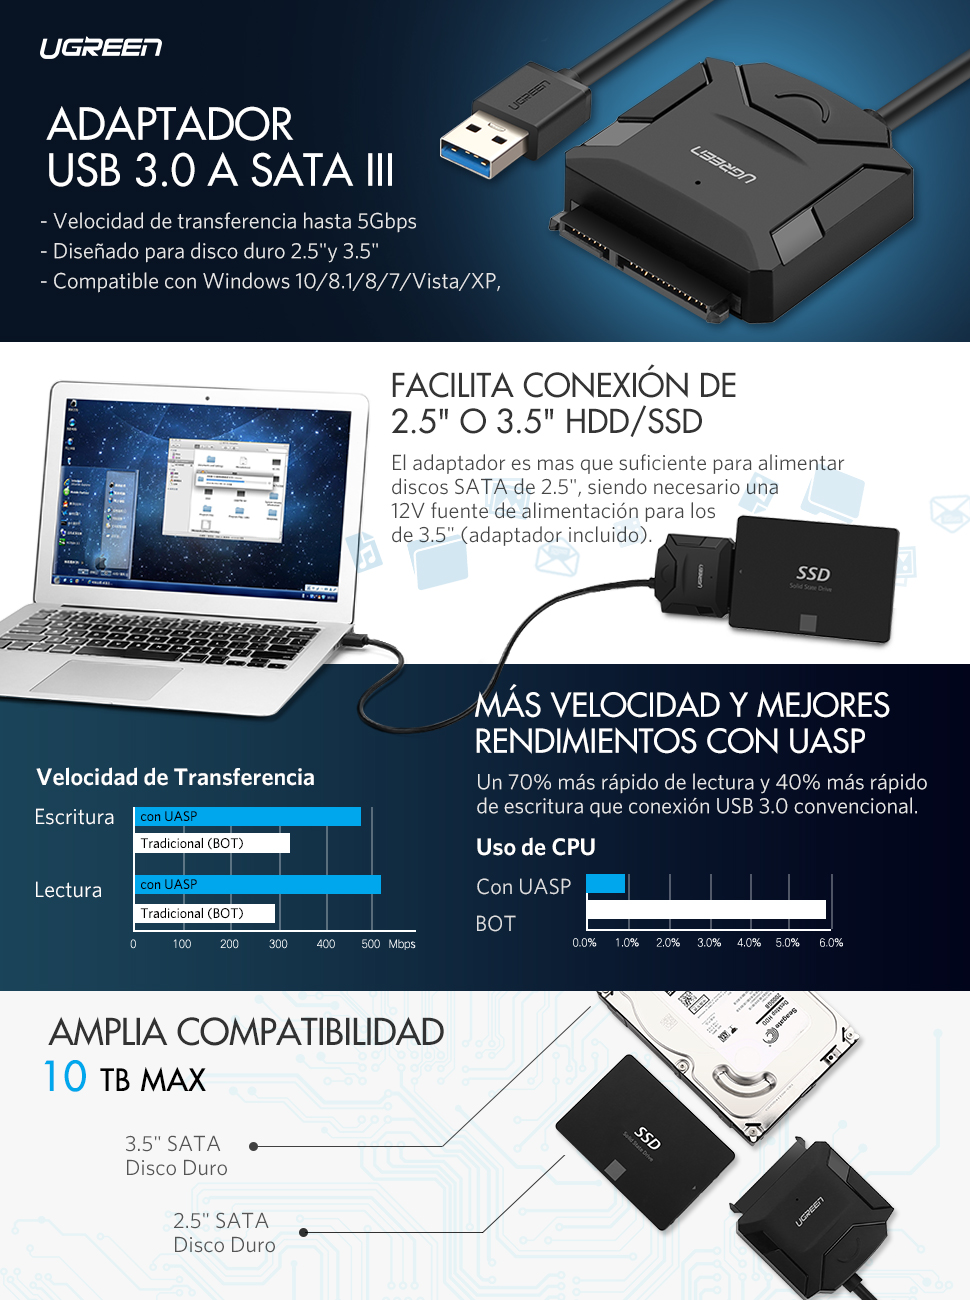 UGREEN Adaptador de USB 3.0 a SATA III con UASP Integrado Cable ...